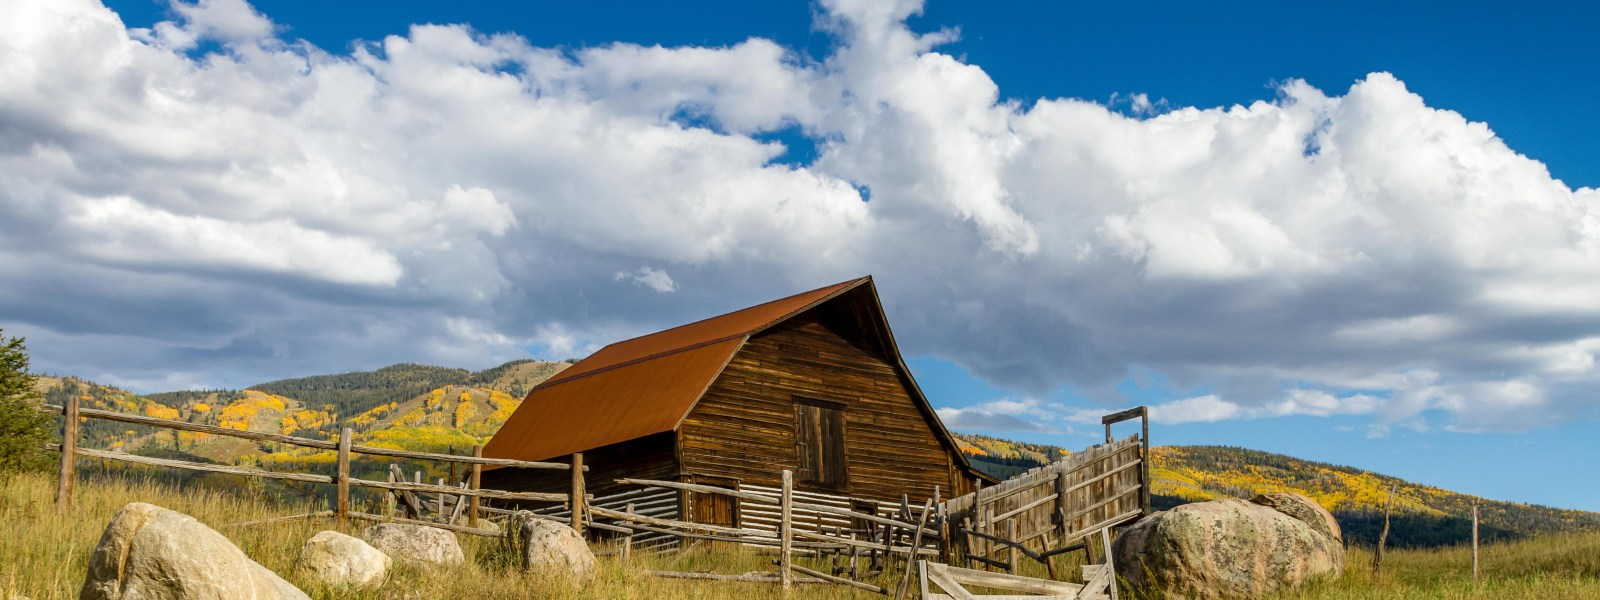 SteamboatSprings-Tour-Guide